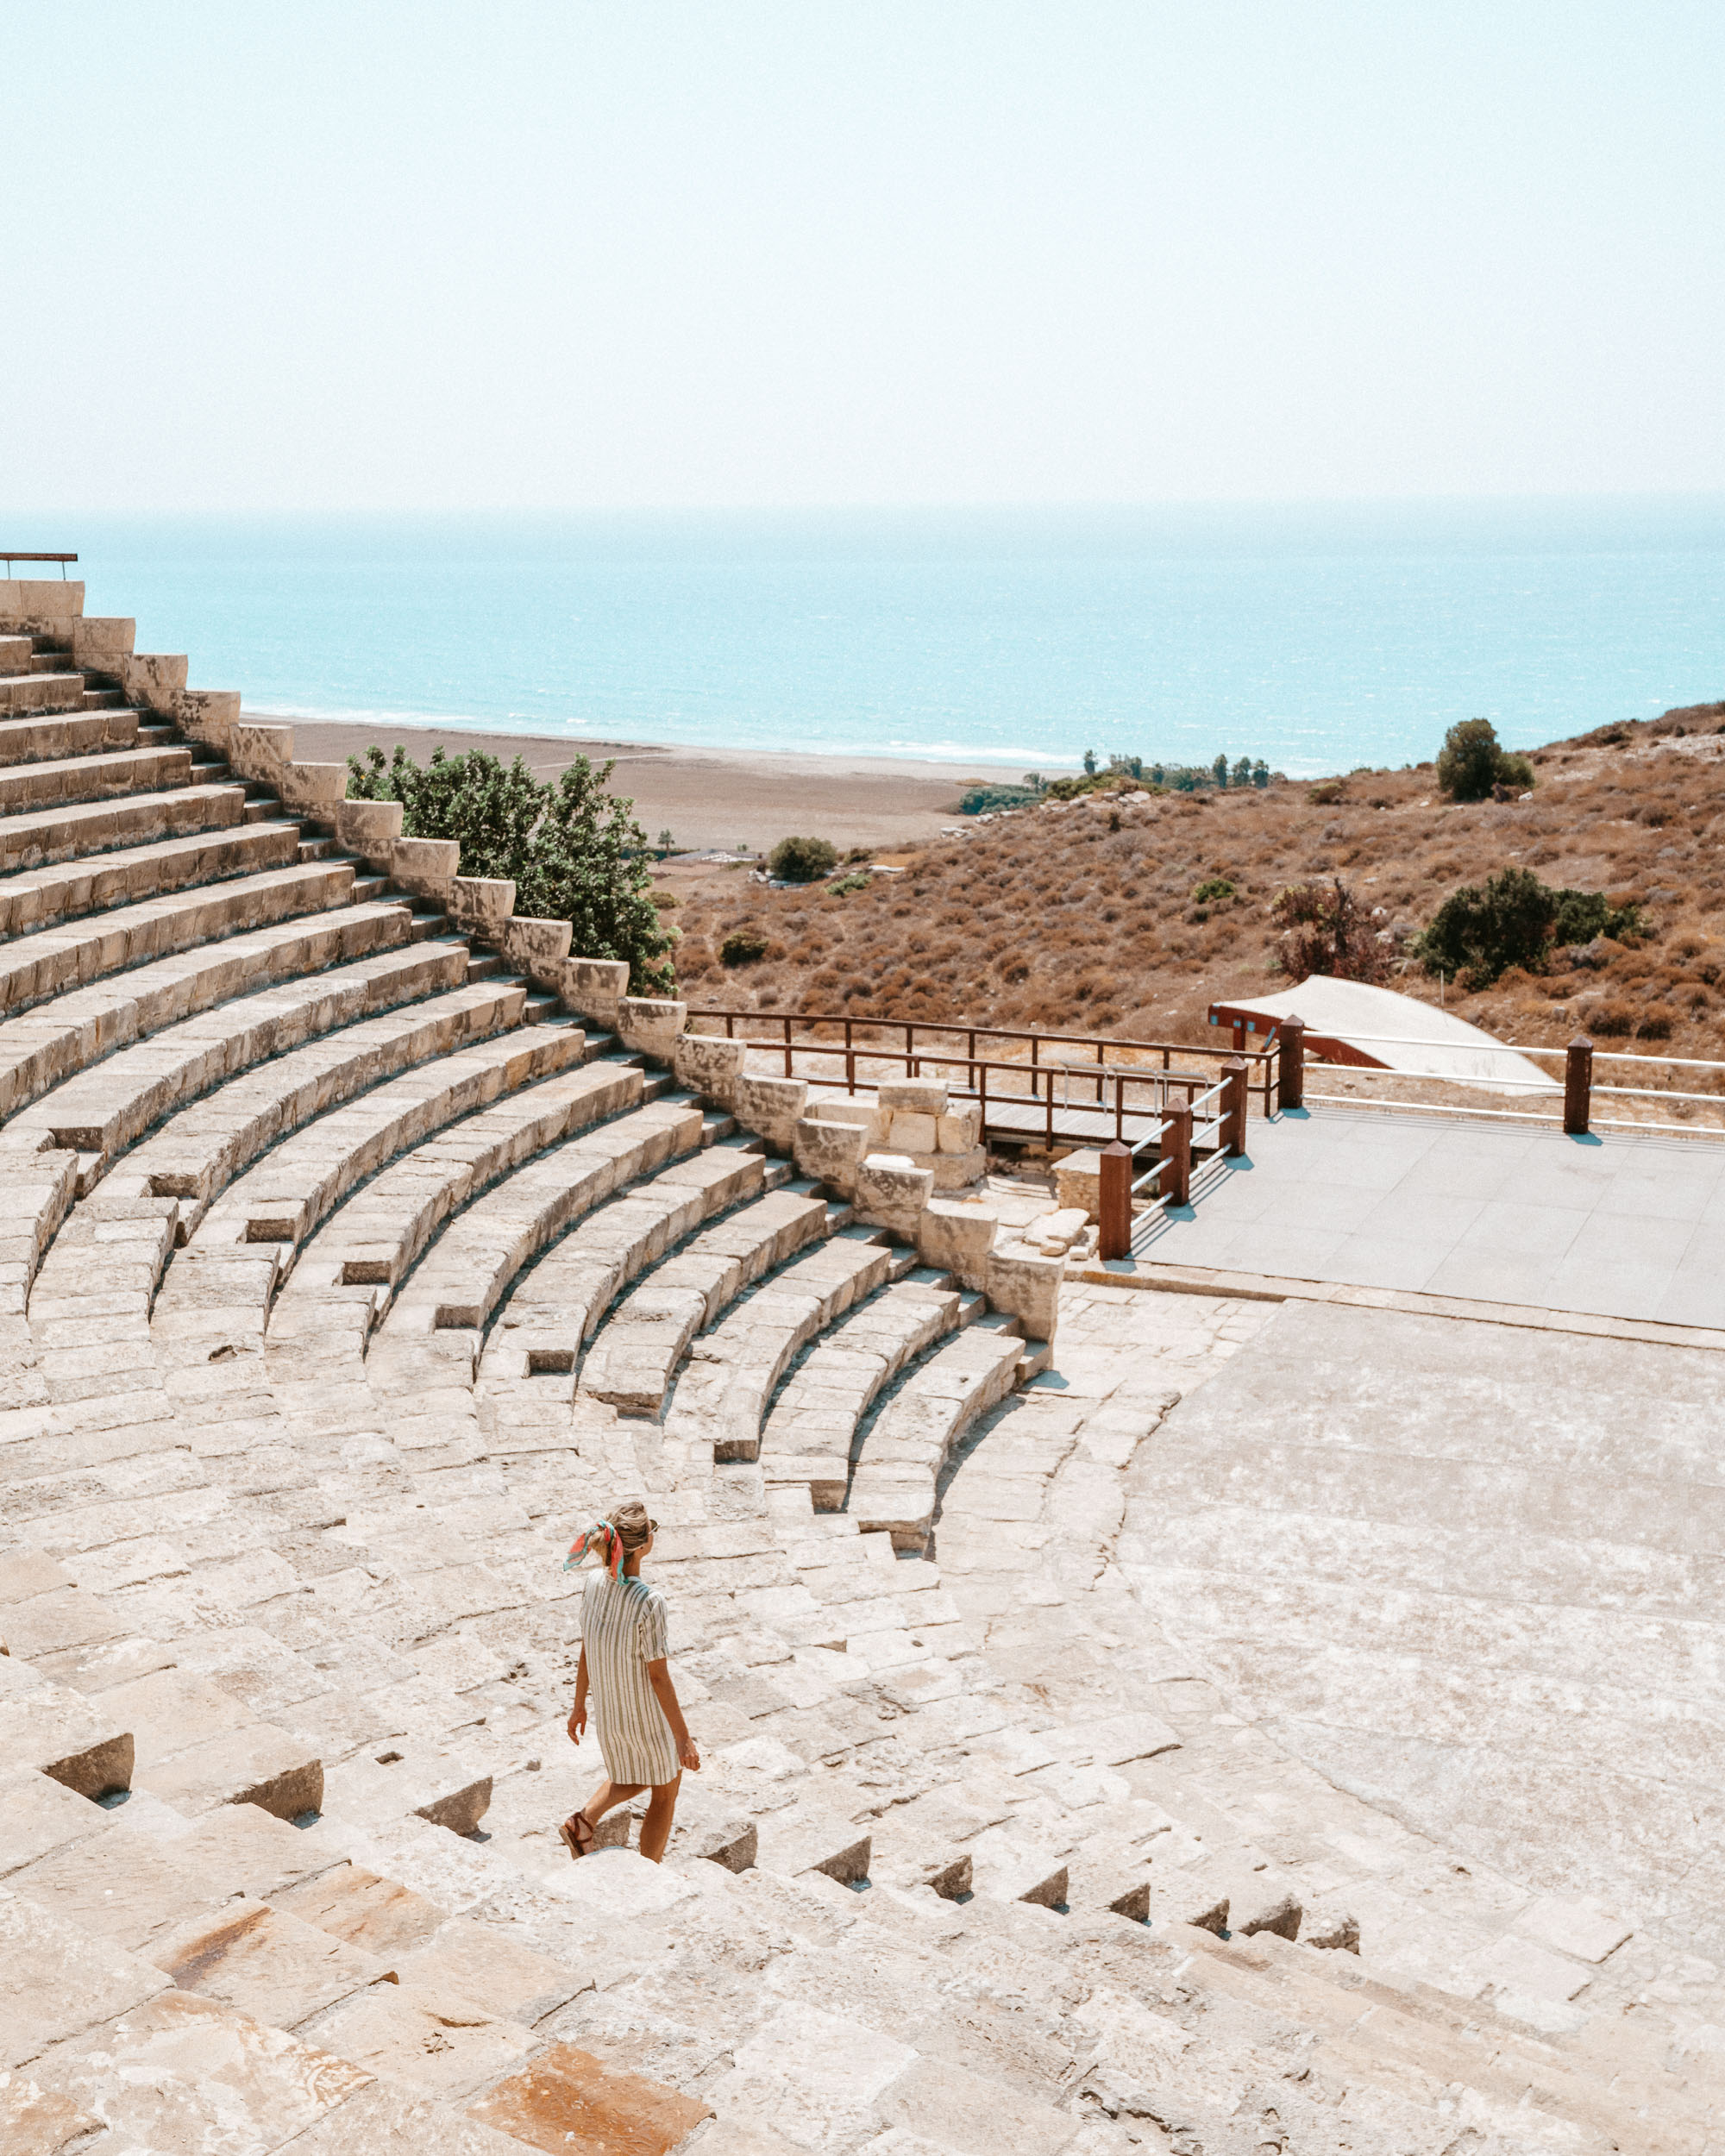 Paphos mosaic archaeological park and views of Cyprus via @finduslost